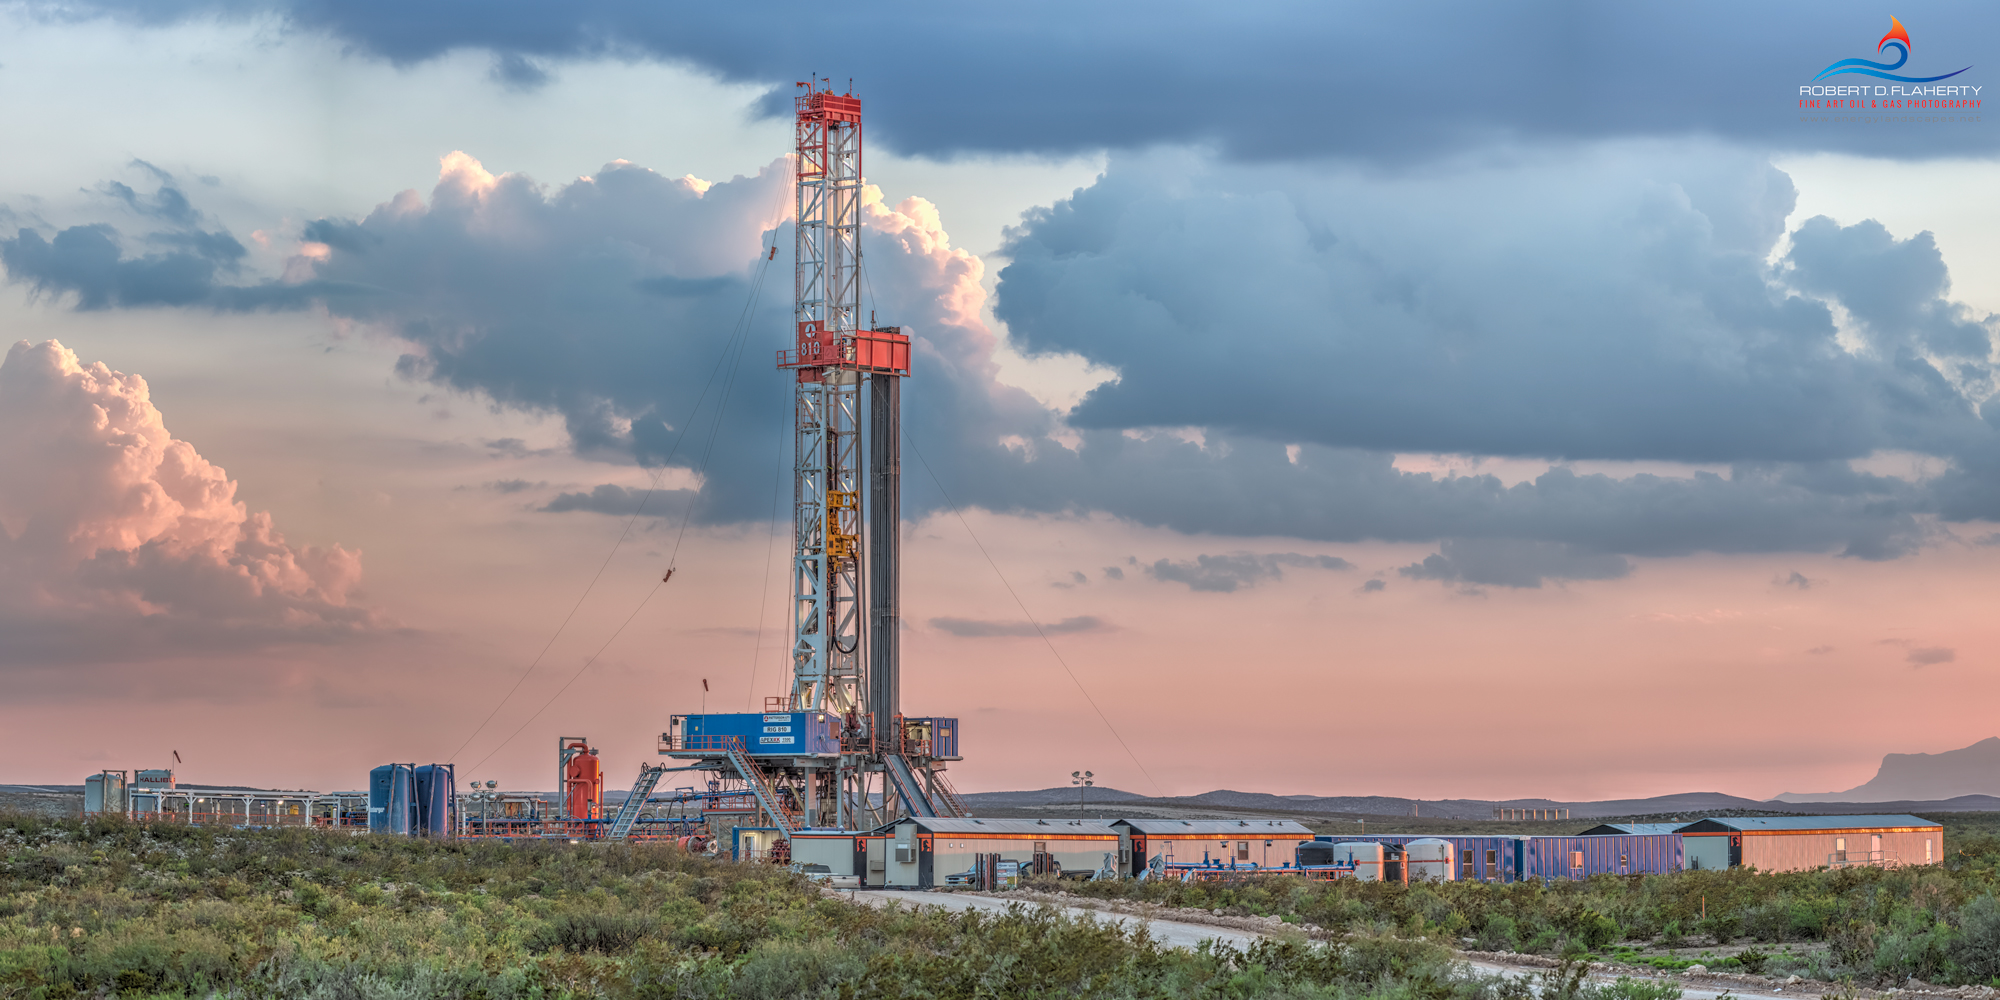 The Great Wide Open is a high resolution 2:1 panorama featuring Patterson rig 810 drilling a directional well above Guadalupe...